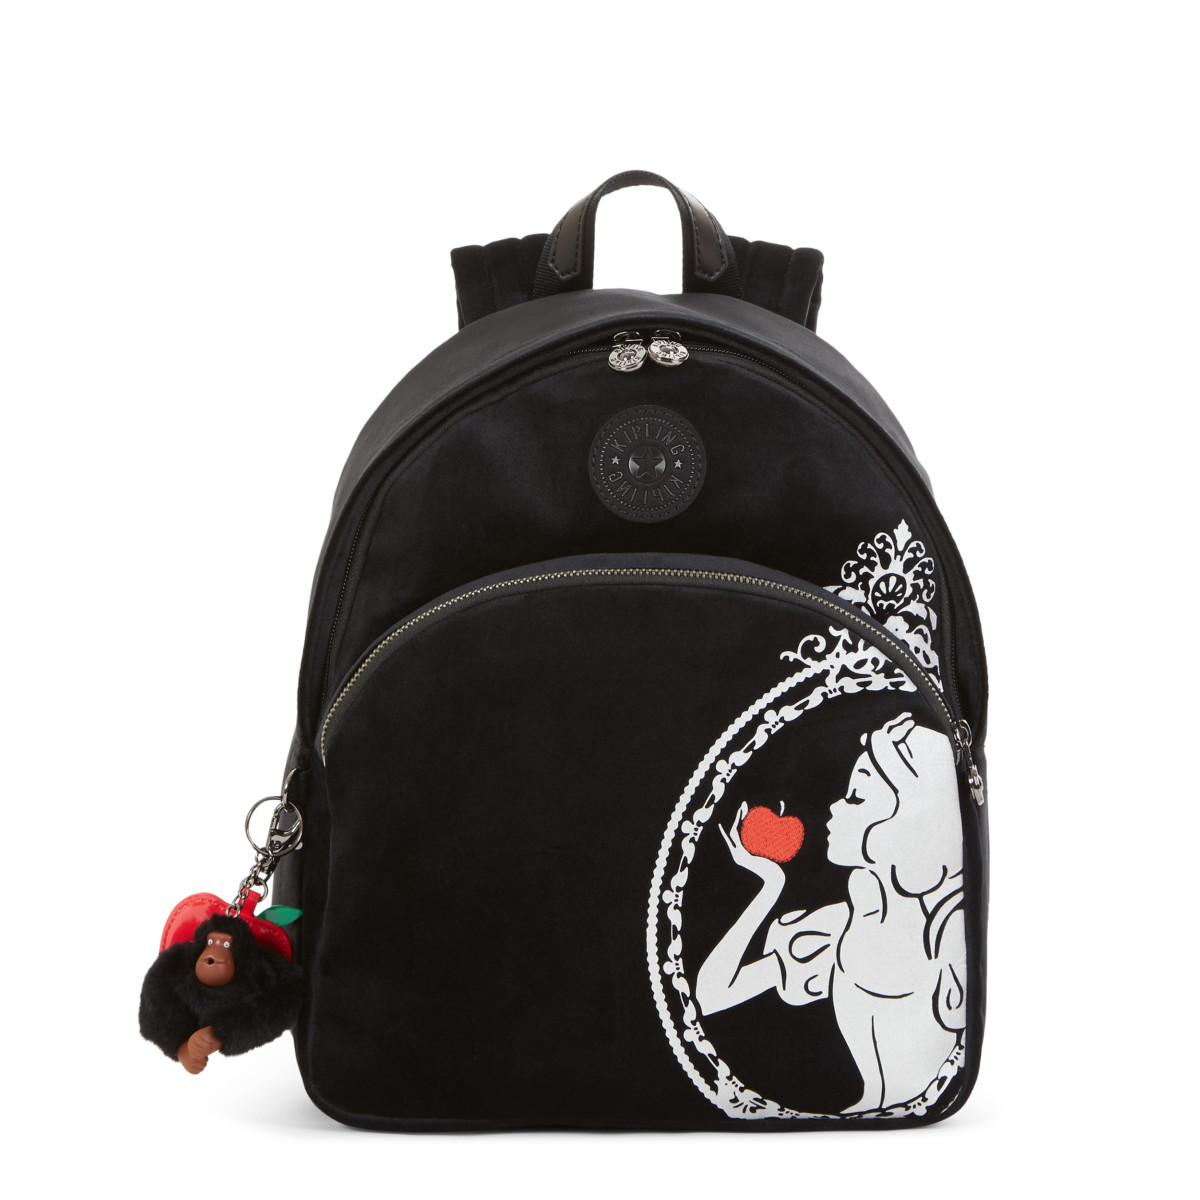 Kipling and Disney Snow White Collection! 7